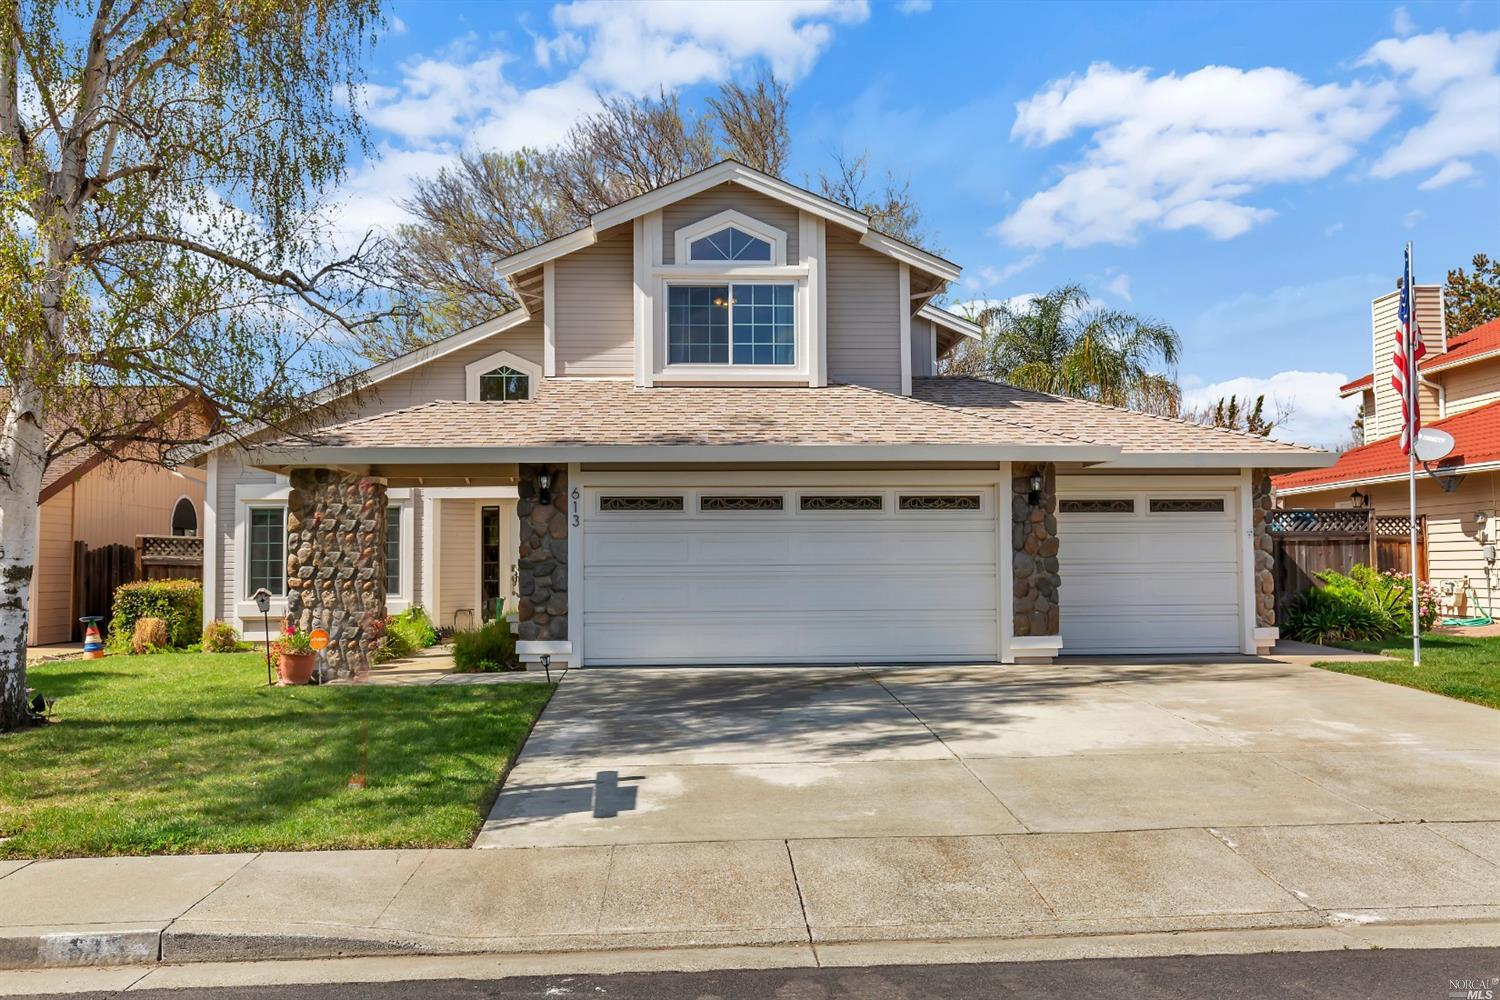 Photo of 613 Whitestag Way, Vacaville, CA 95687